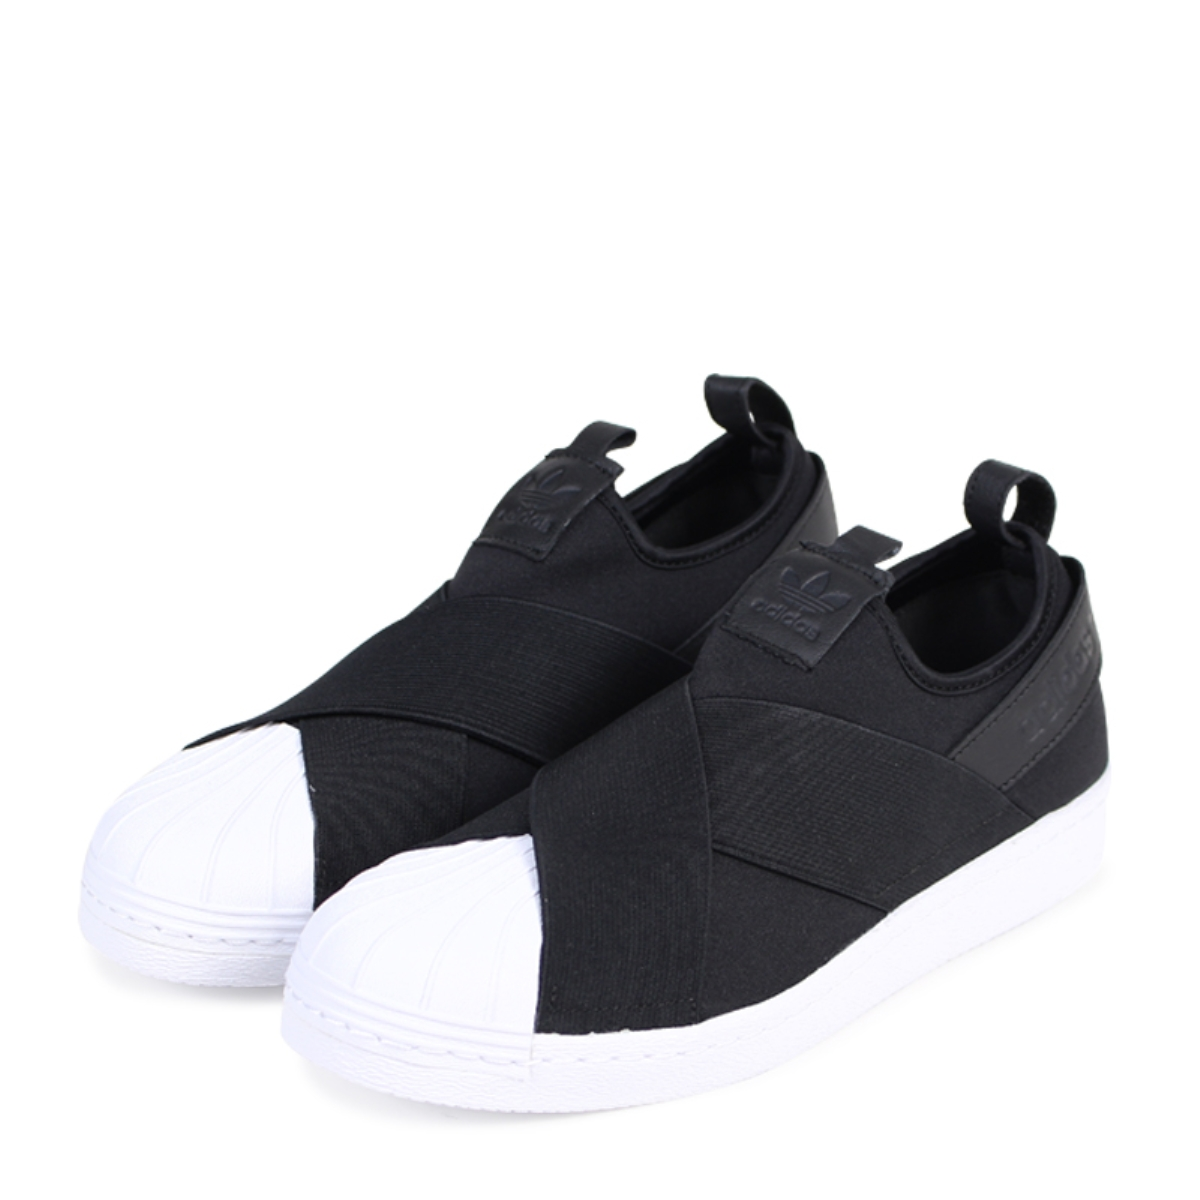 buy popular 5e460 42a37 adidas Originals SUPERSTAR SLIP-ON Adidas superstar sneakers slip-ons men  gap Dis BZ0112 black originals [1/30 Shinnyu load] [181]